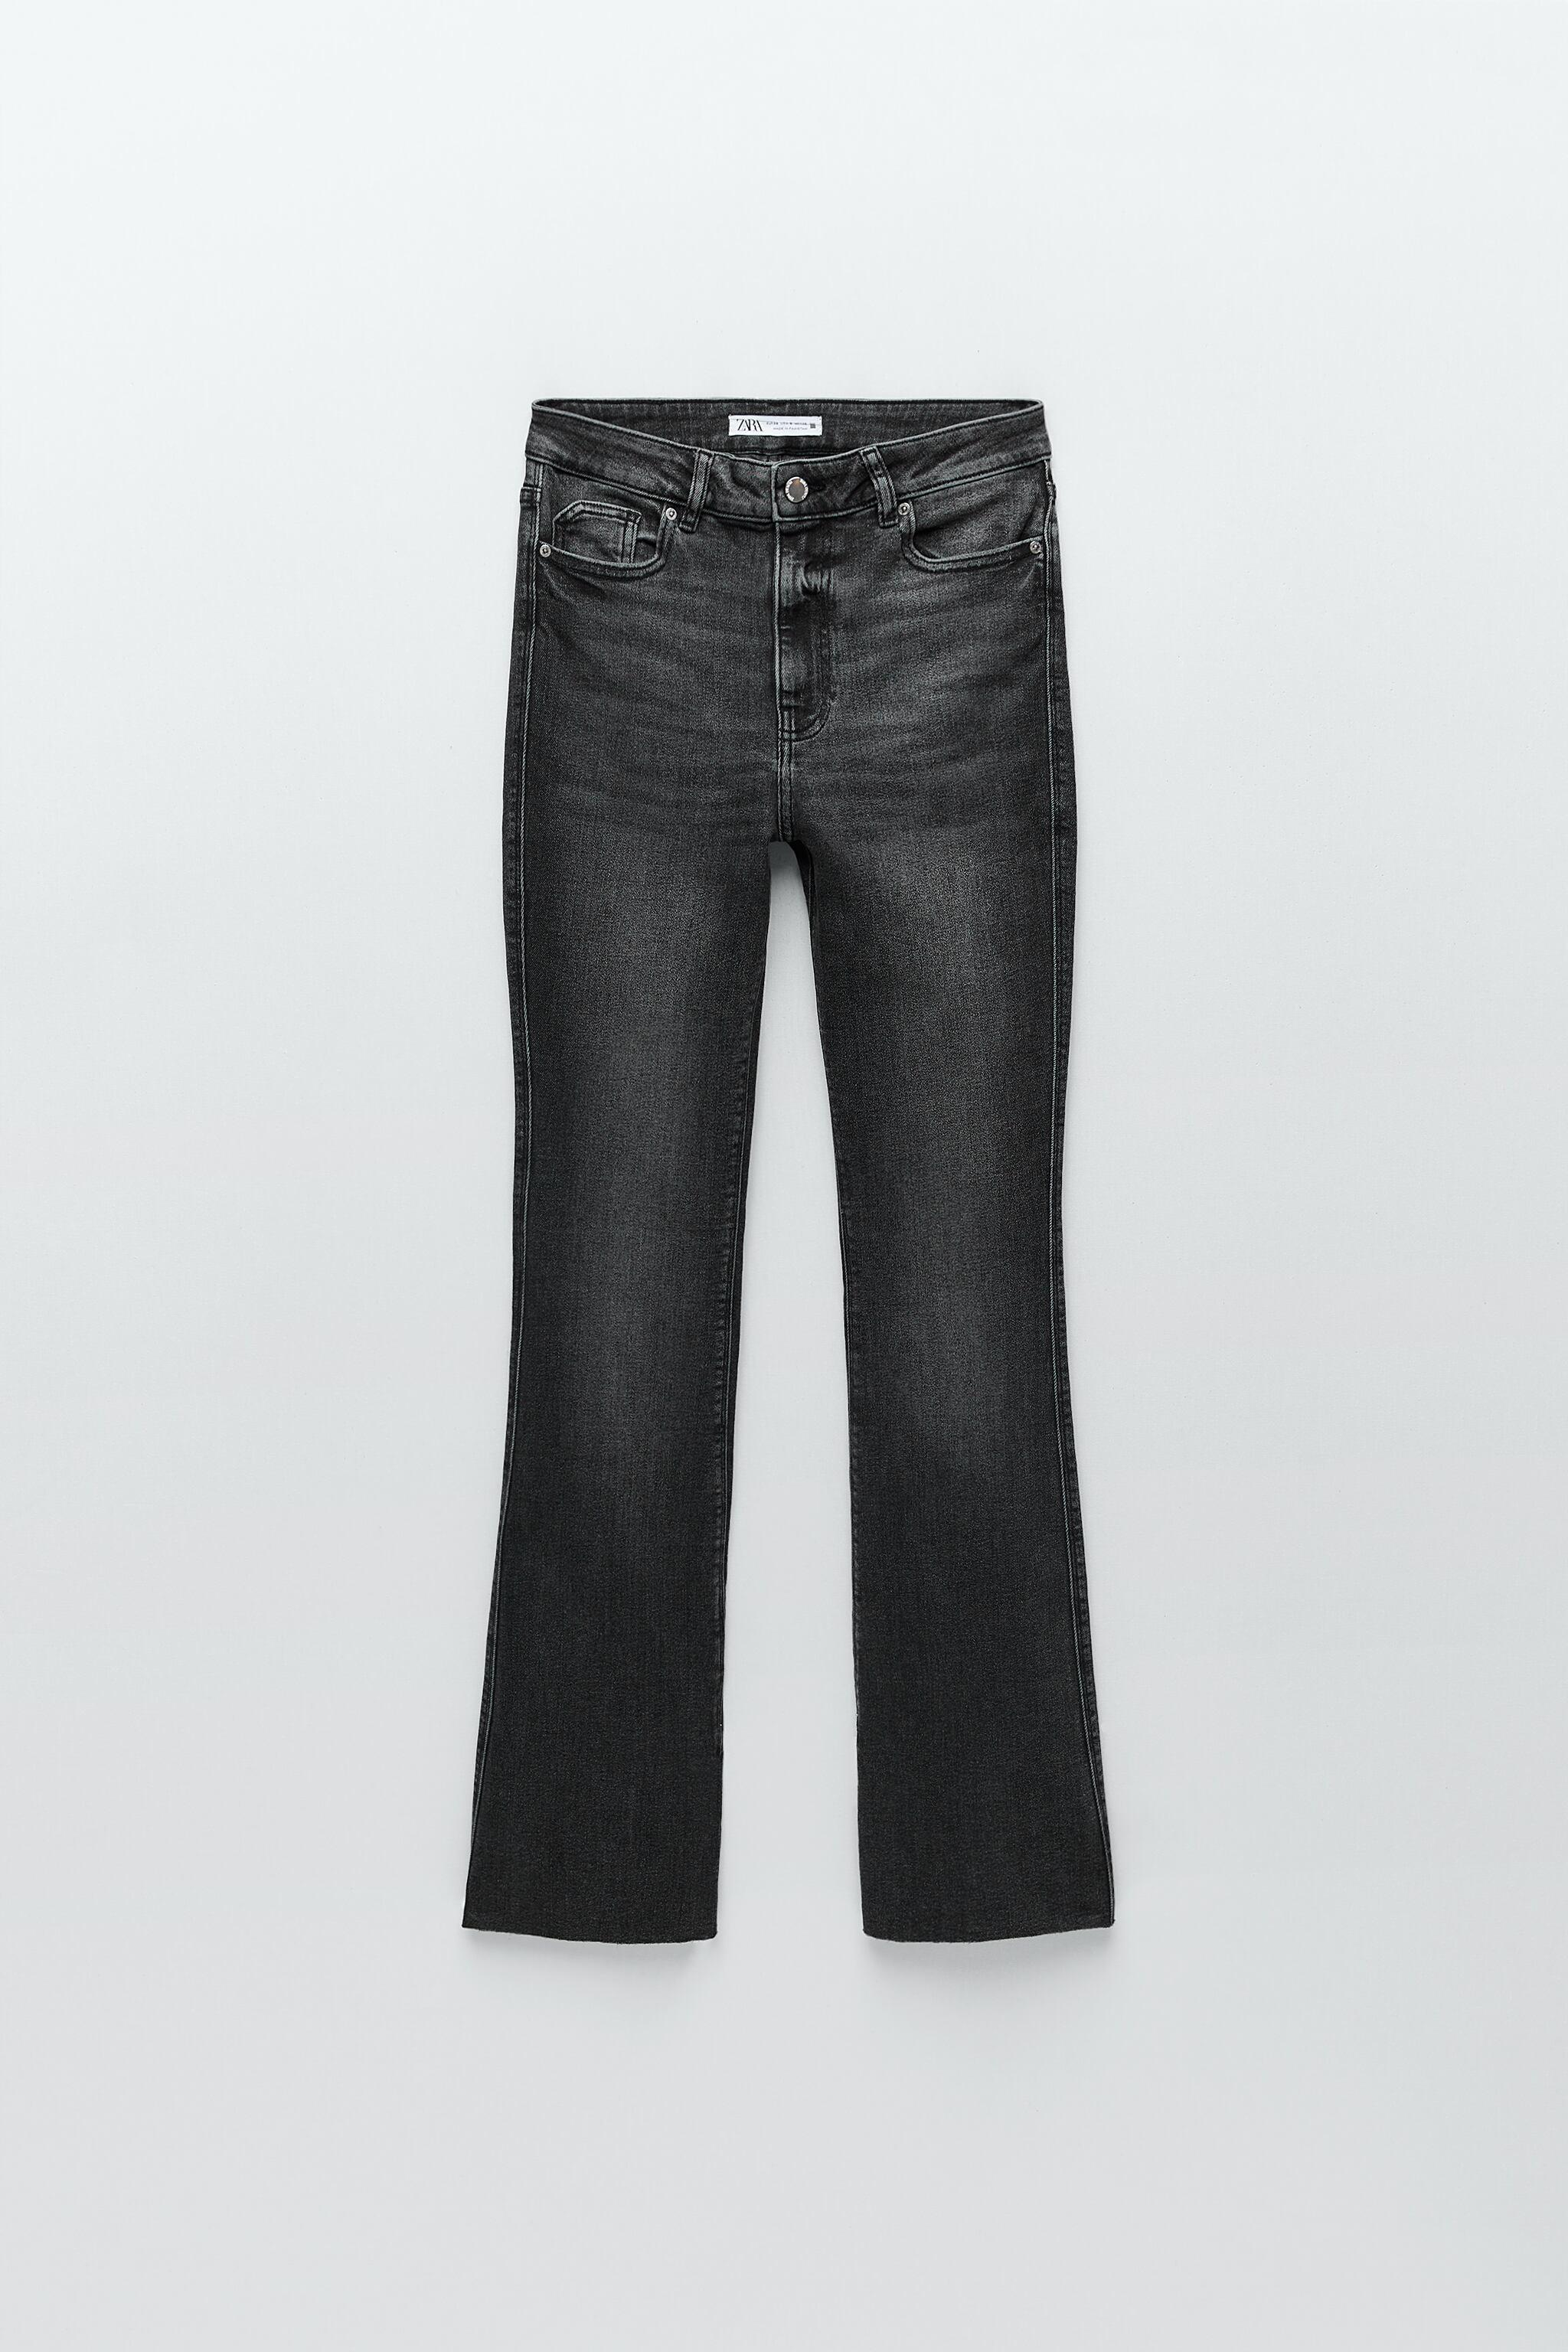 FLARED HIGH RISE Z1975 SKINNY JEANS 2